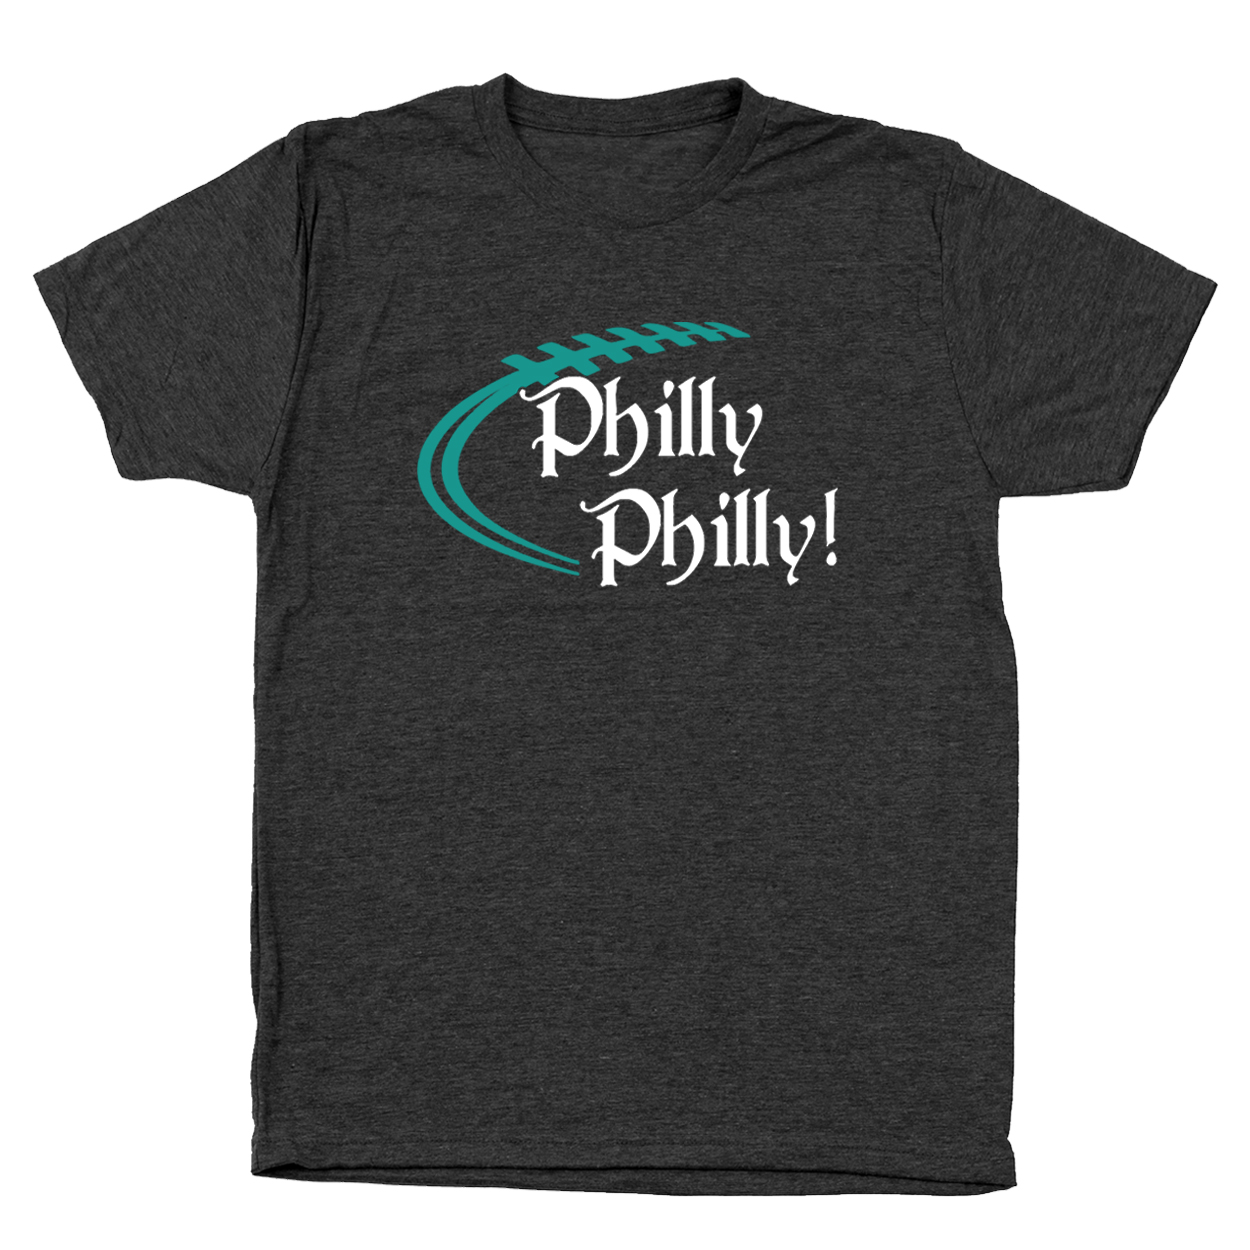 Philly Philly Philadelphia Eagles Small Heather Black Men's Tri-Blend T-Shirt